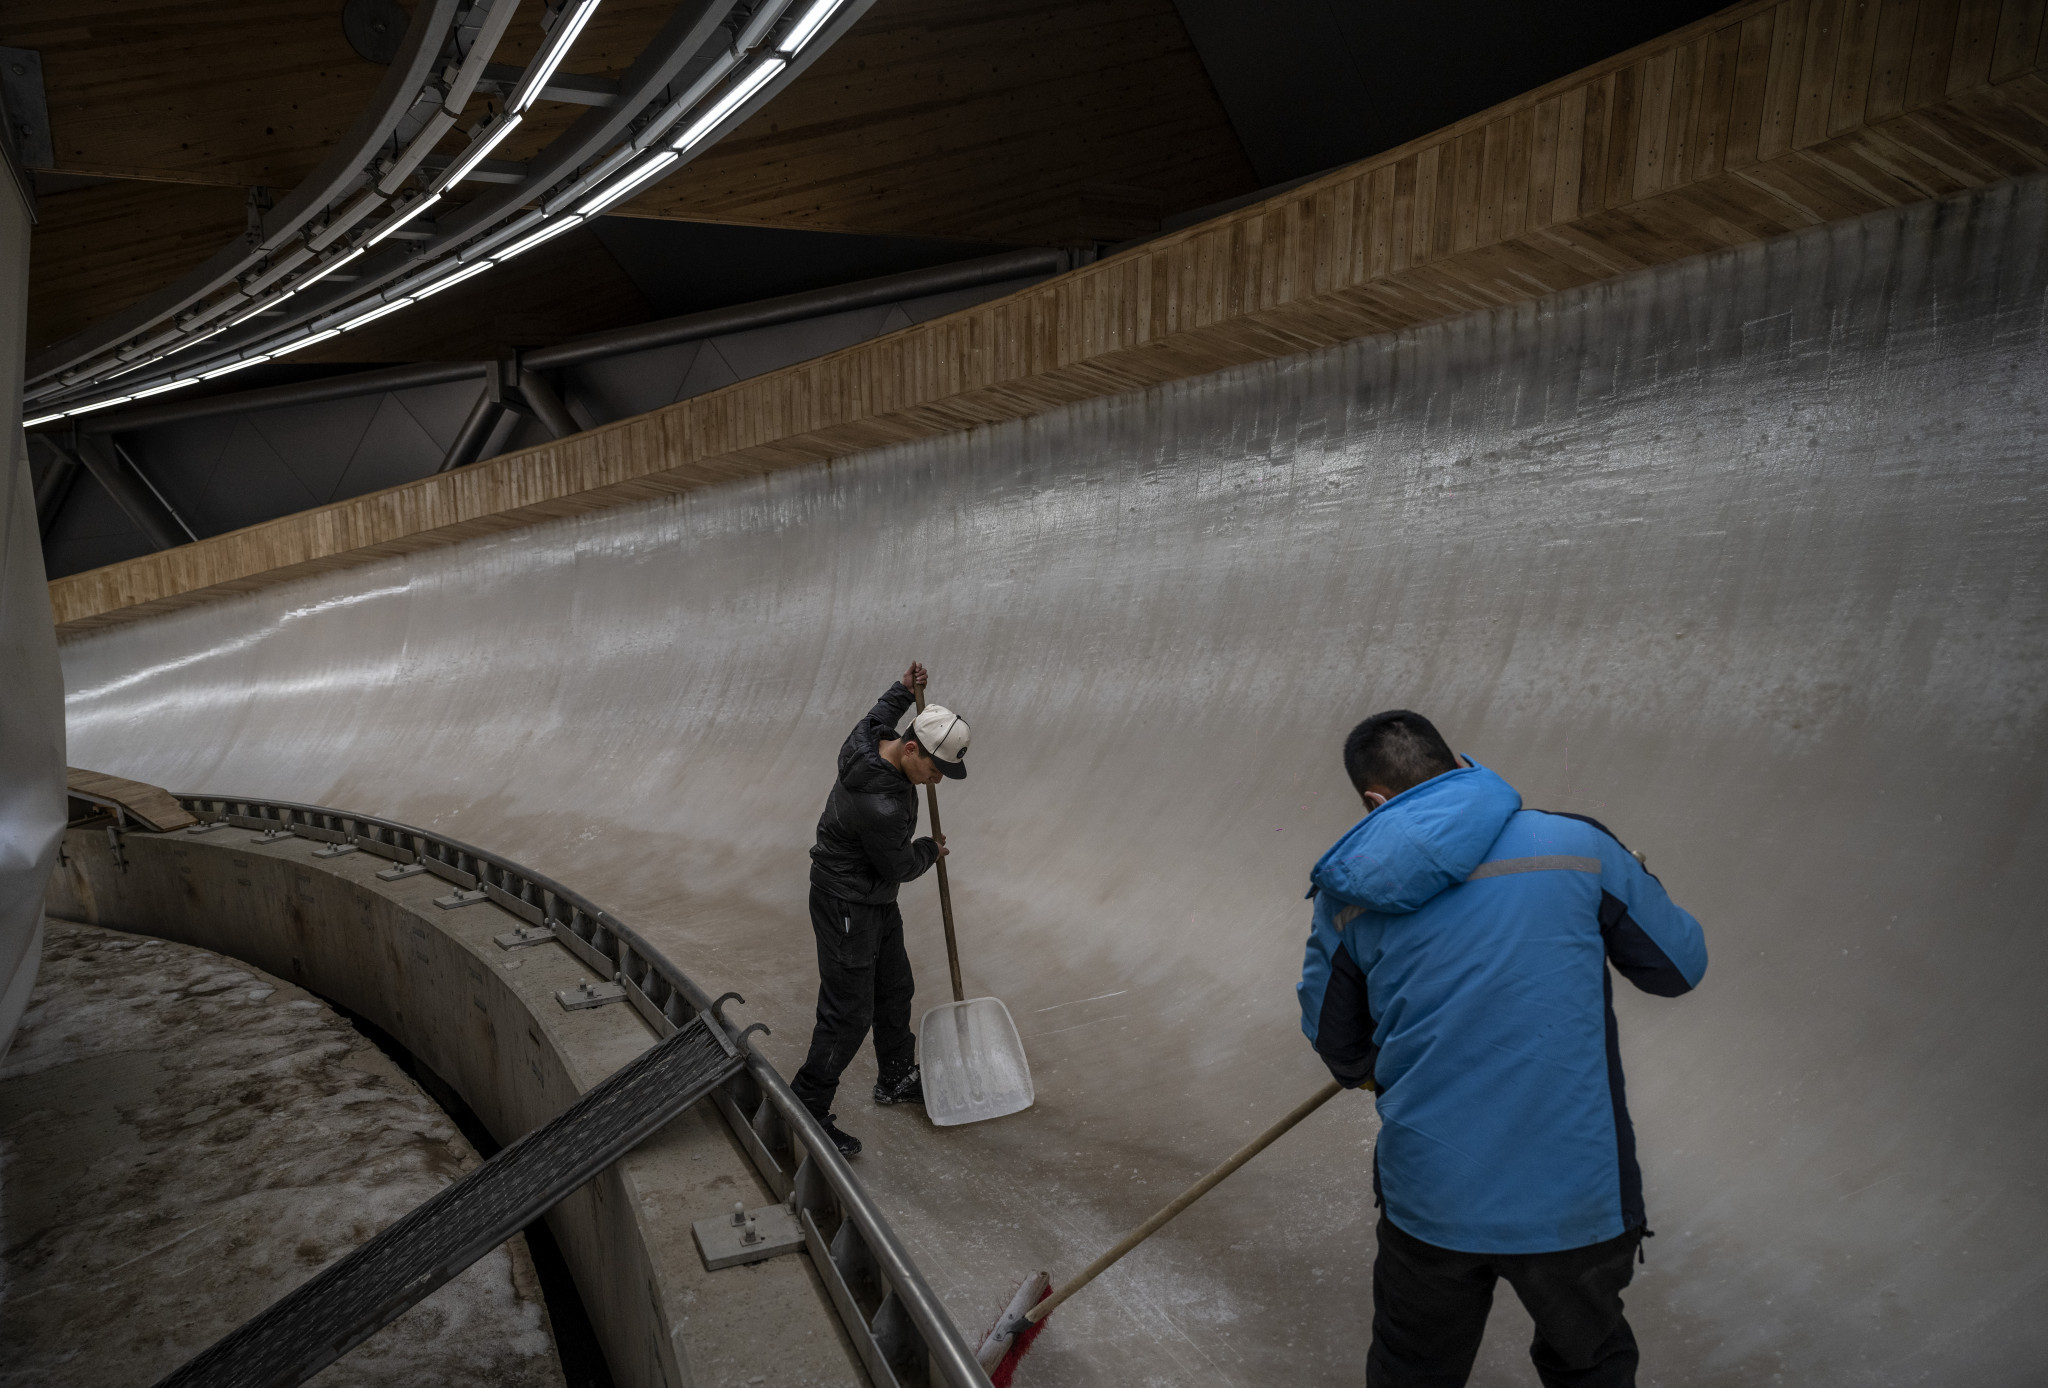 The luge and bobsleigh competitions at Beijing 2022 are set to be held at the National Sliding Center ©Getty Images